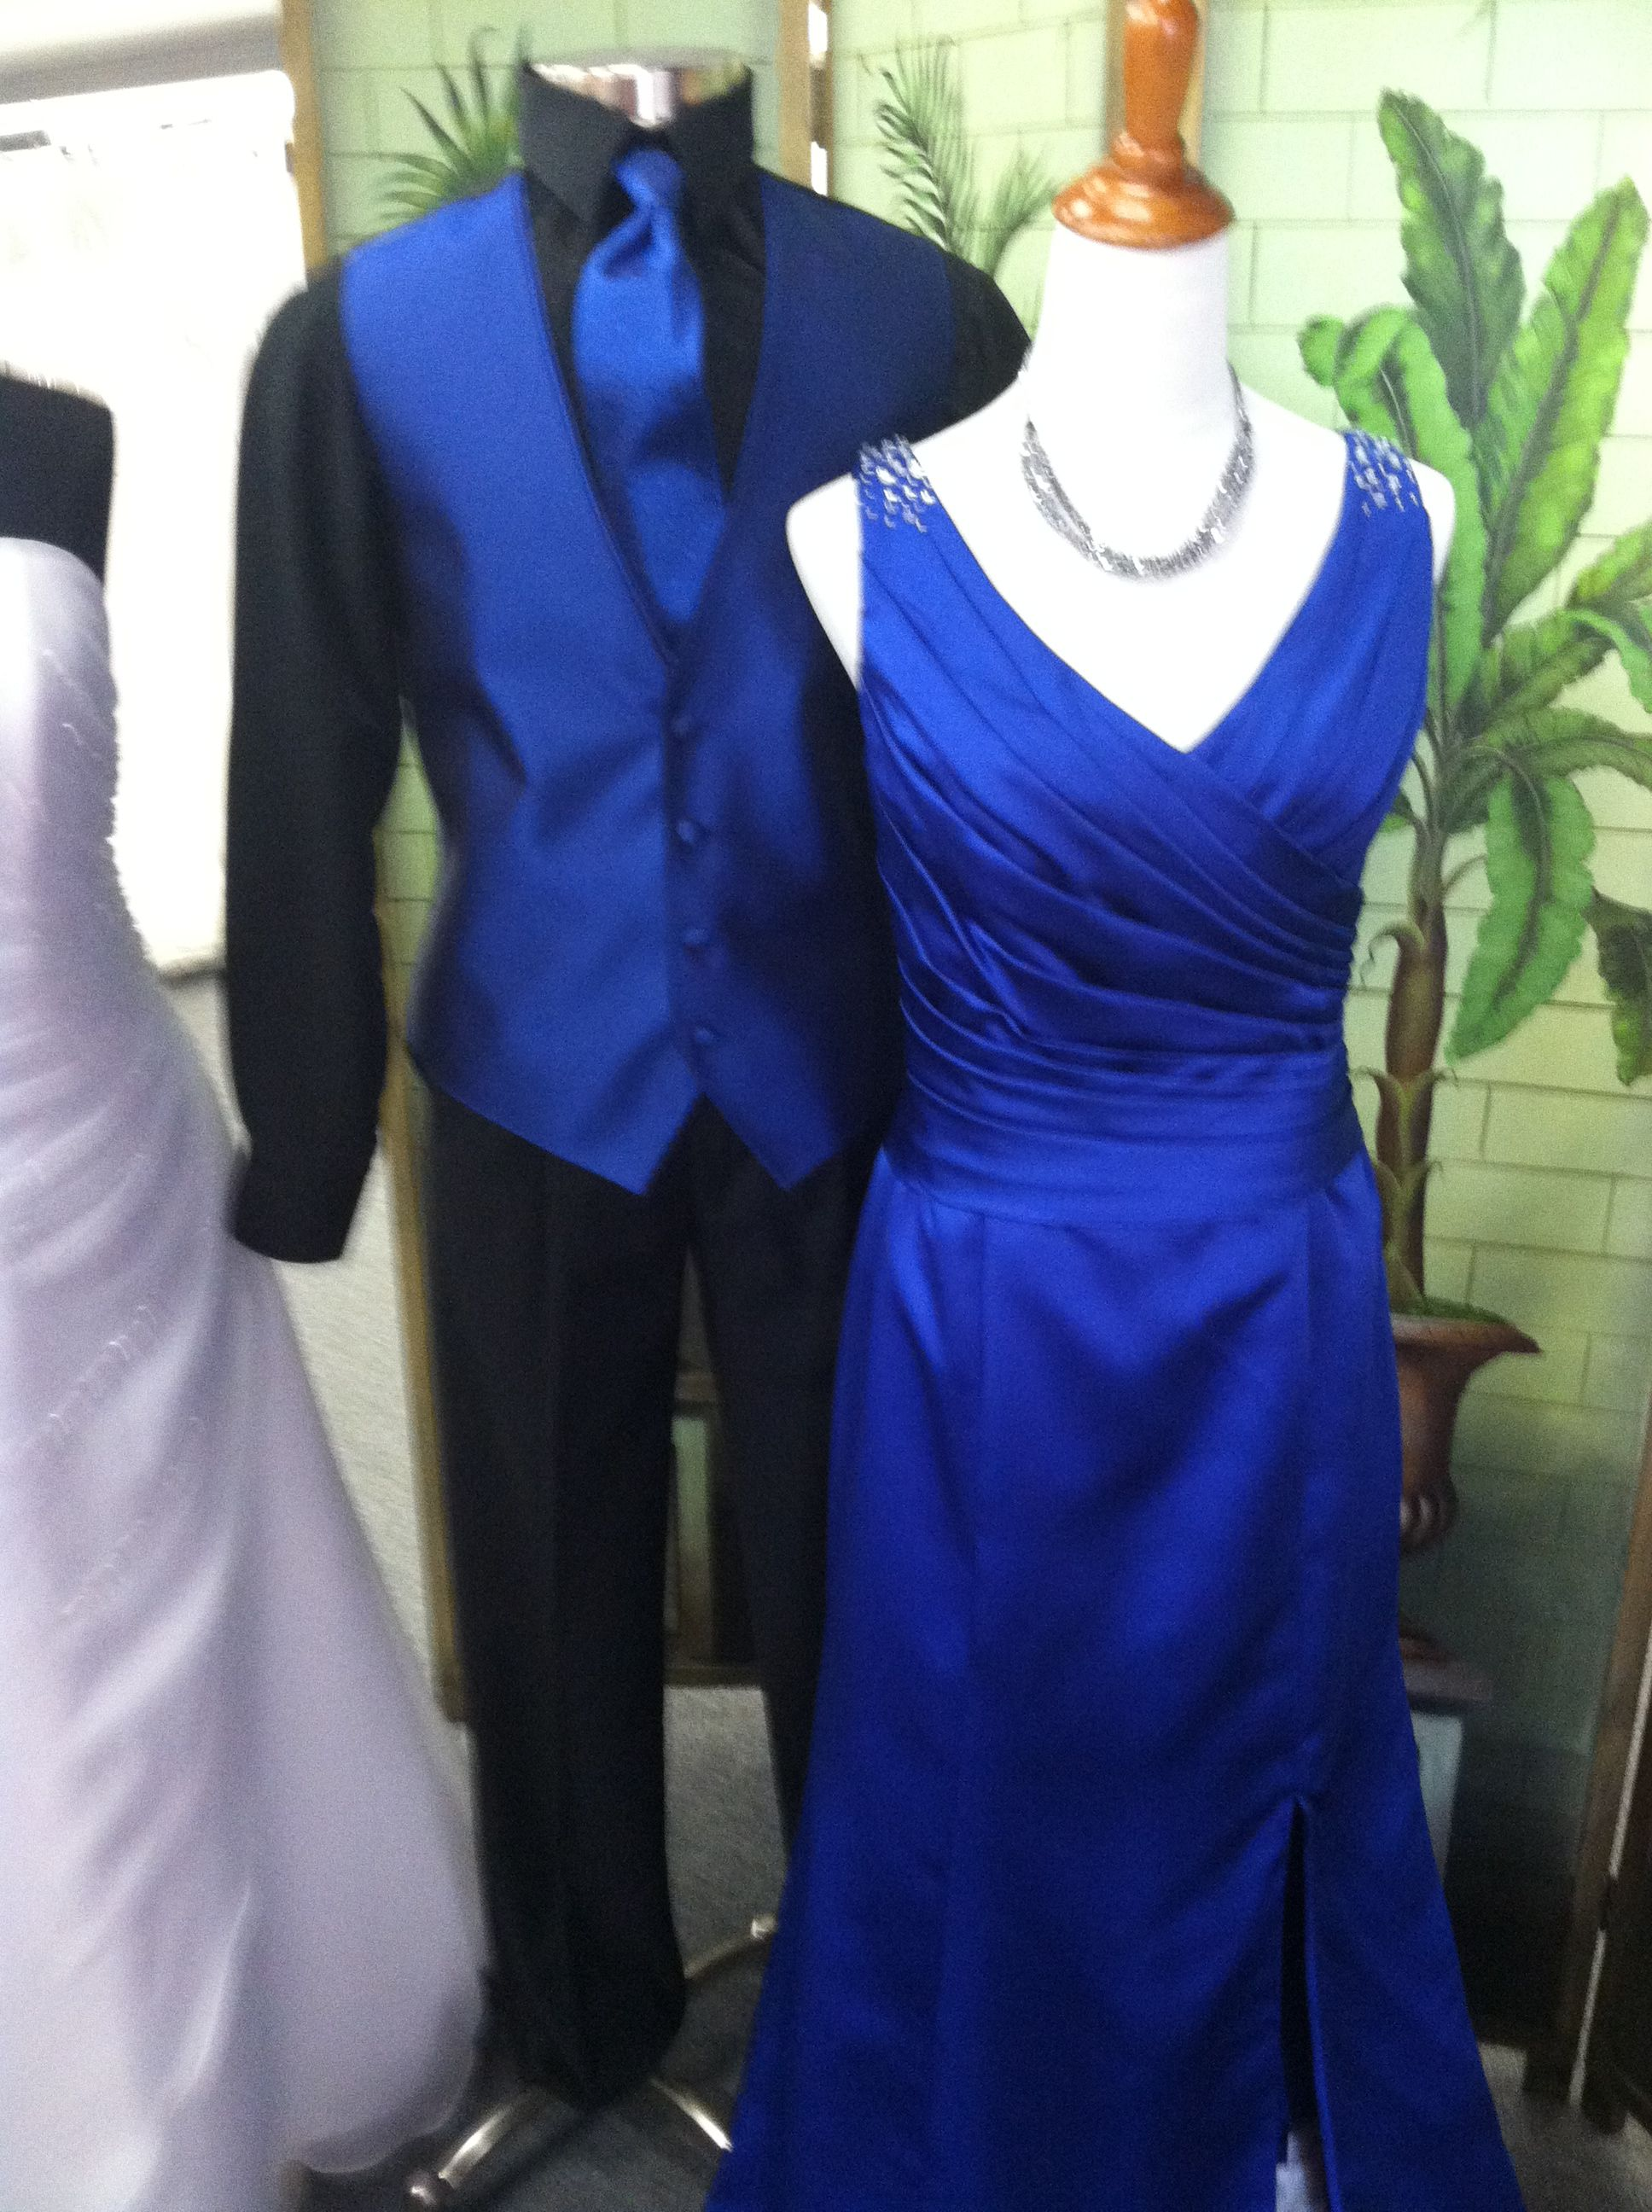 Royal blue bridesmaid or informal dress by DaVinci with royal blue and black tuxedo